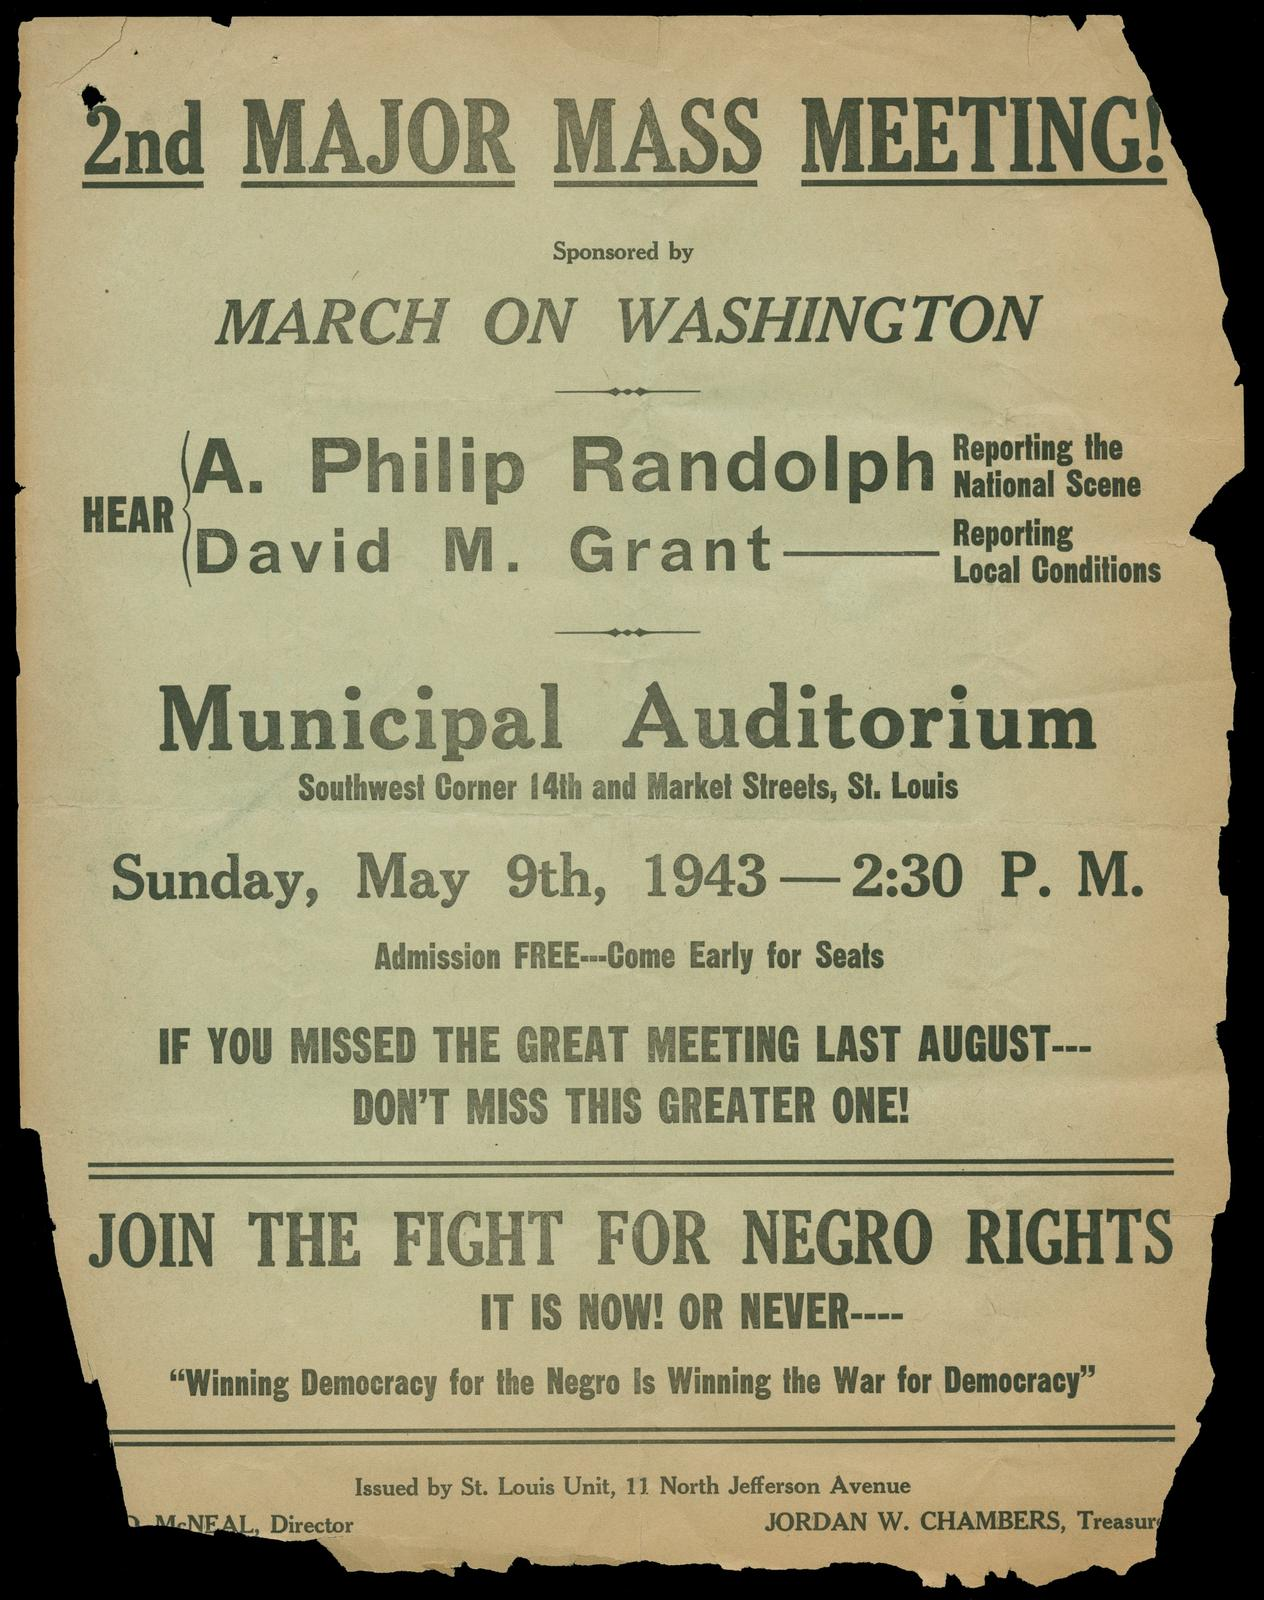 2nd major mass meeting sponsored by March on Washington, 1946